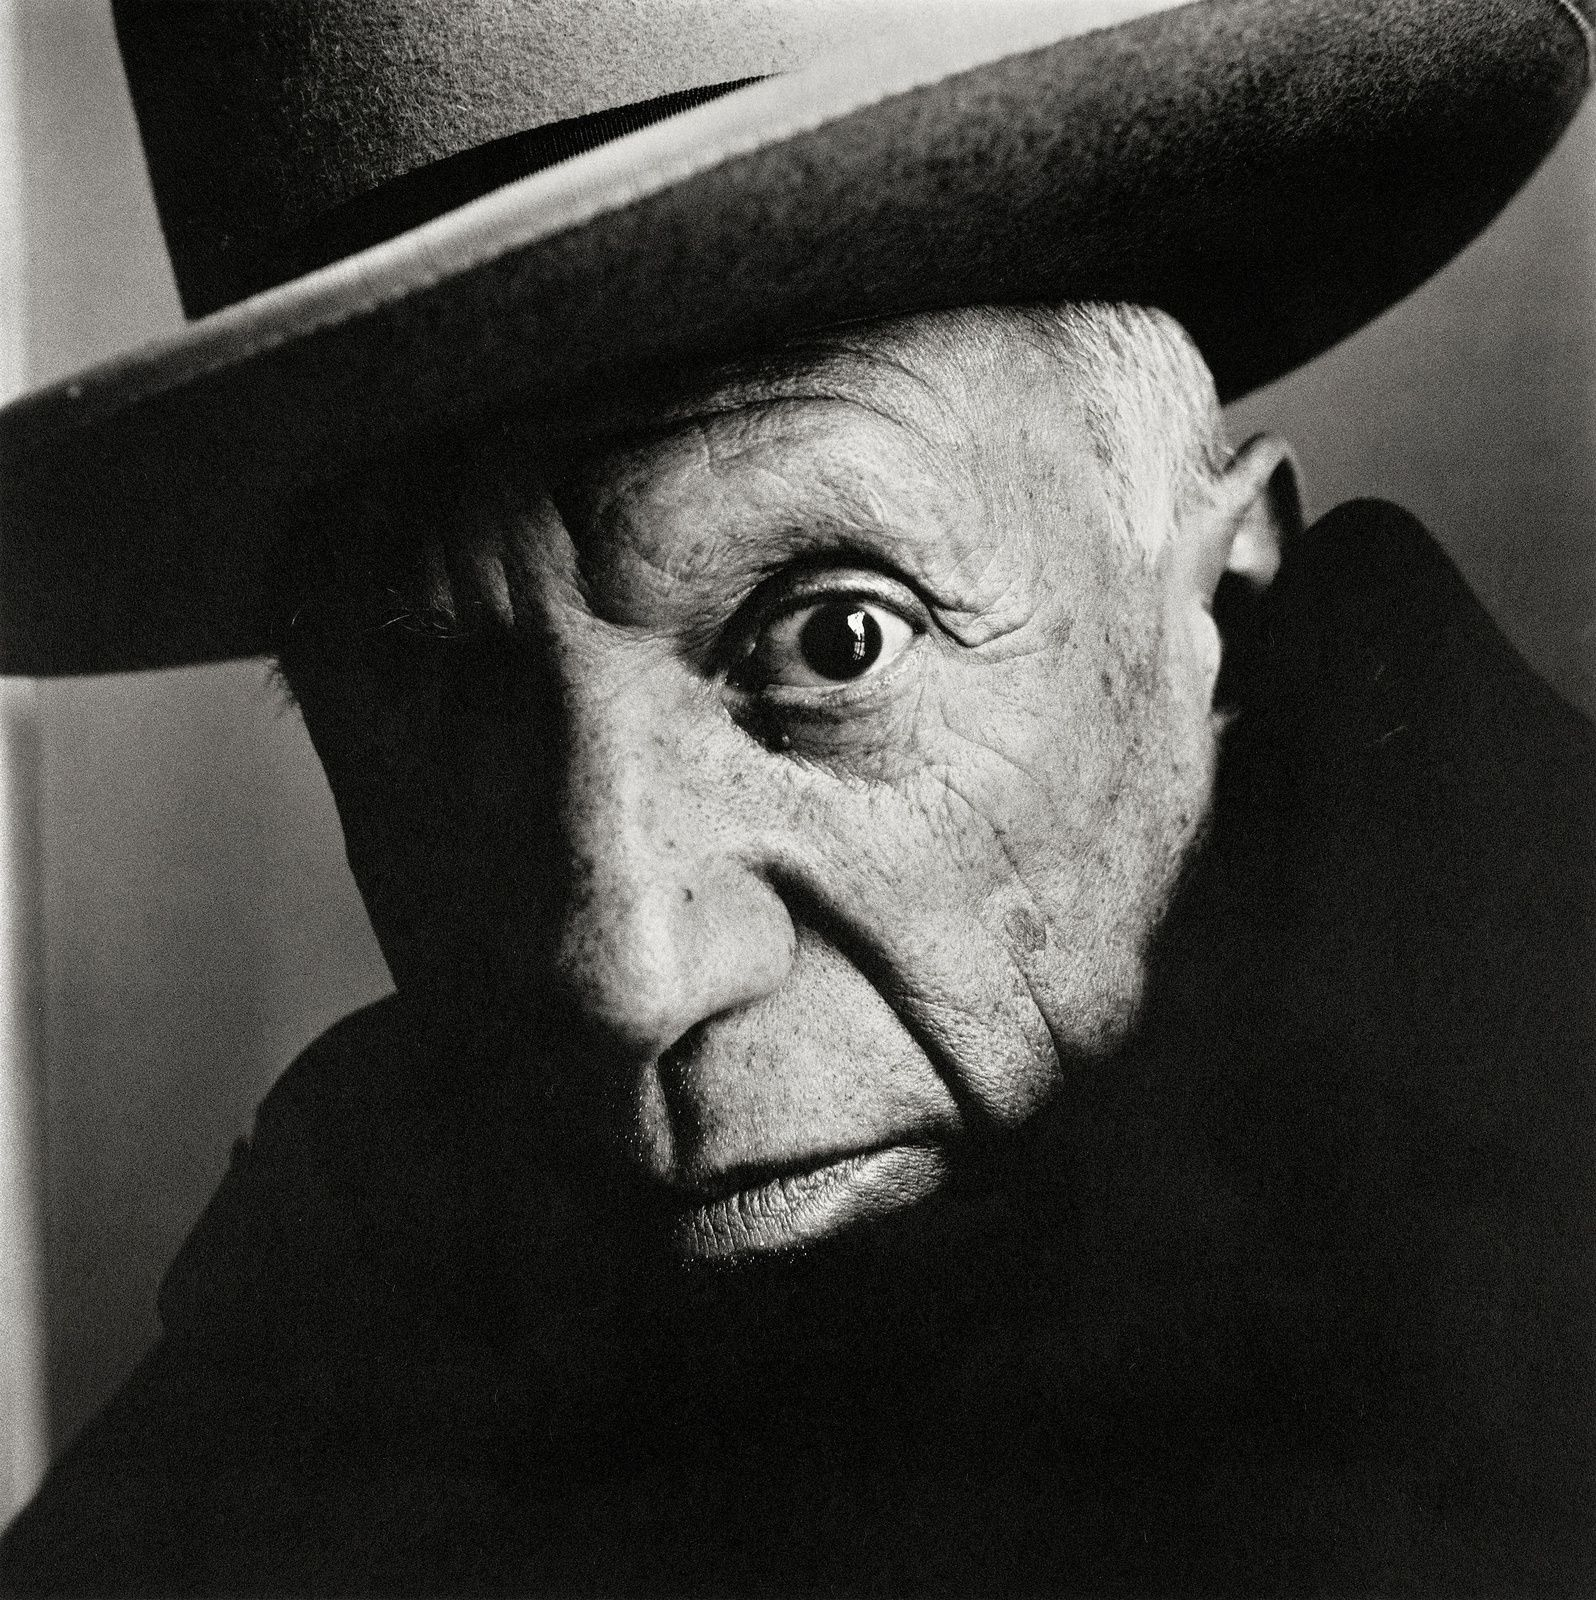 """Pablo Picasso"", 1962 d'Irving PENN - Courtesy The Metropolitan Museum of Art"